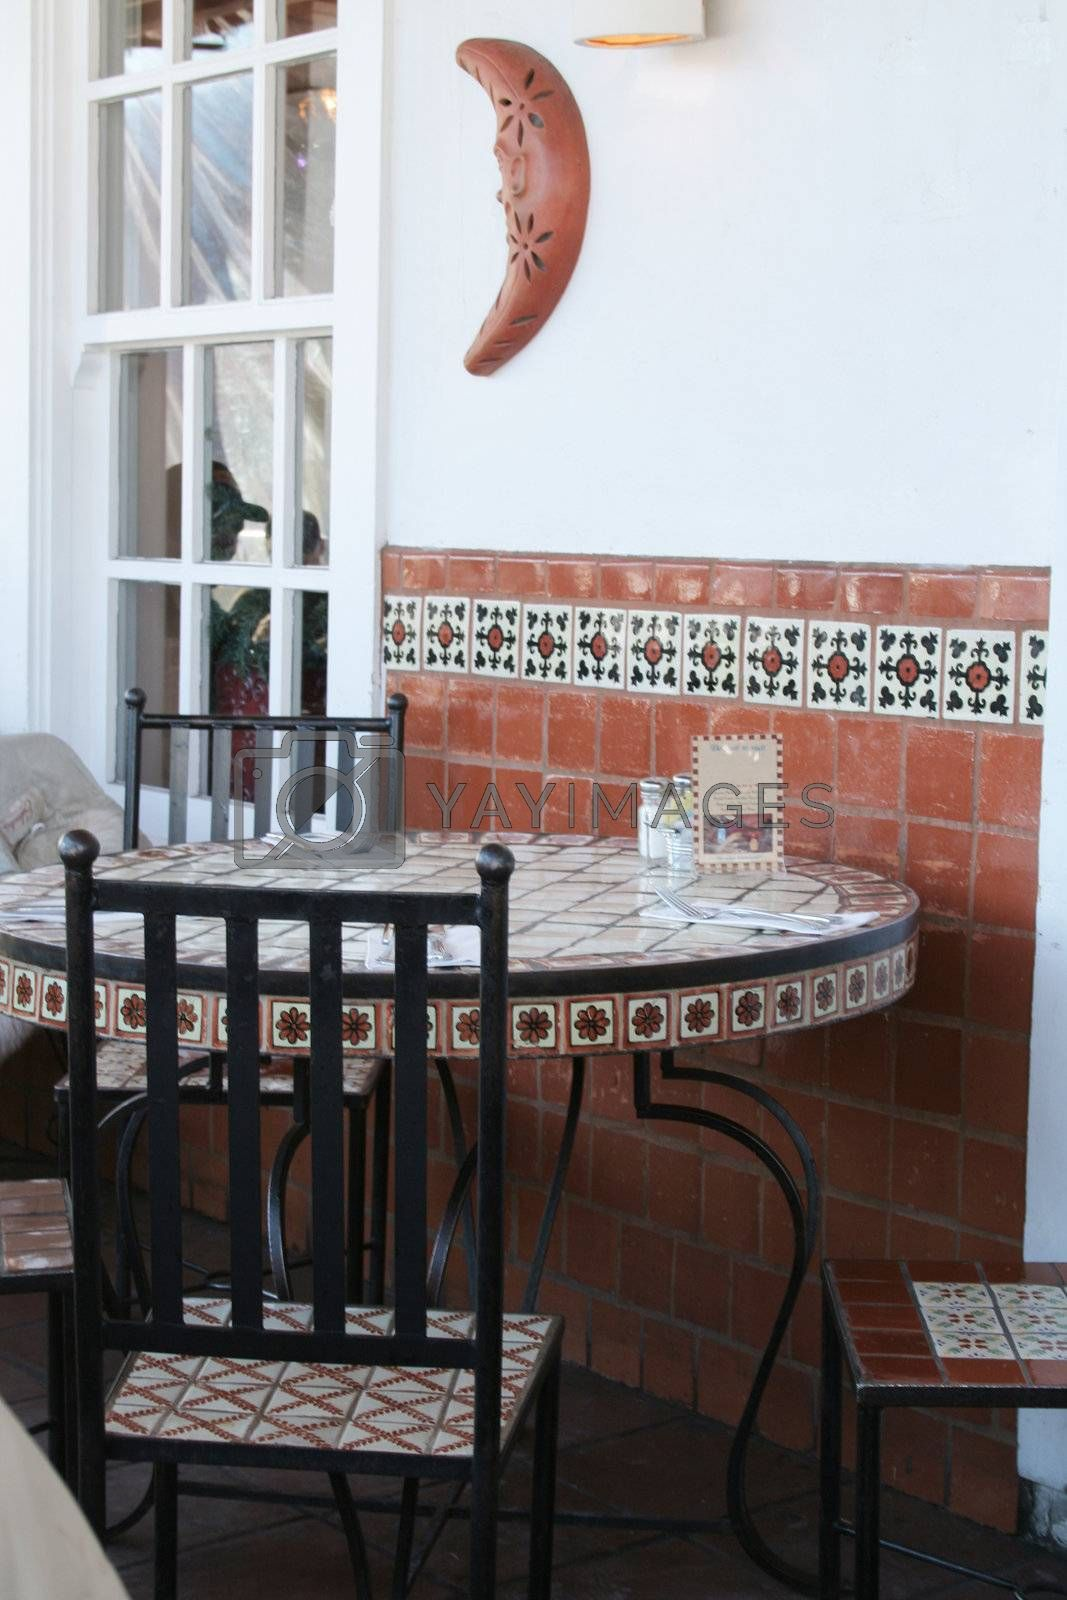 Southwest style table with artistic tiles